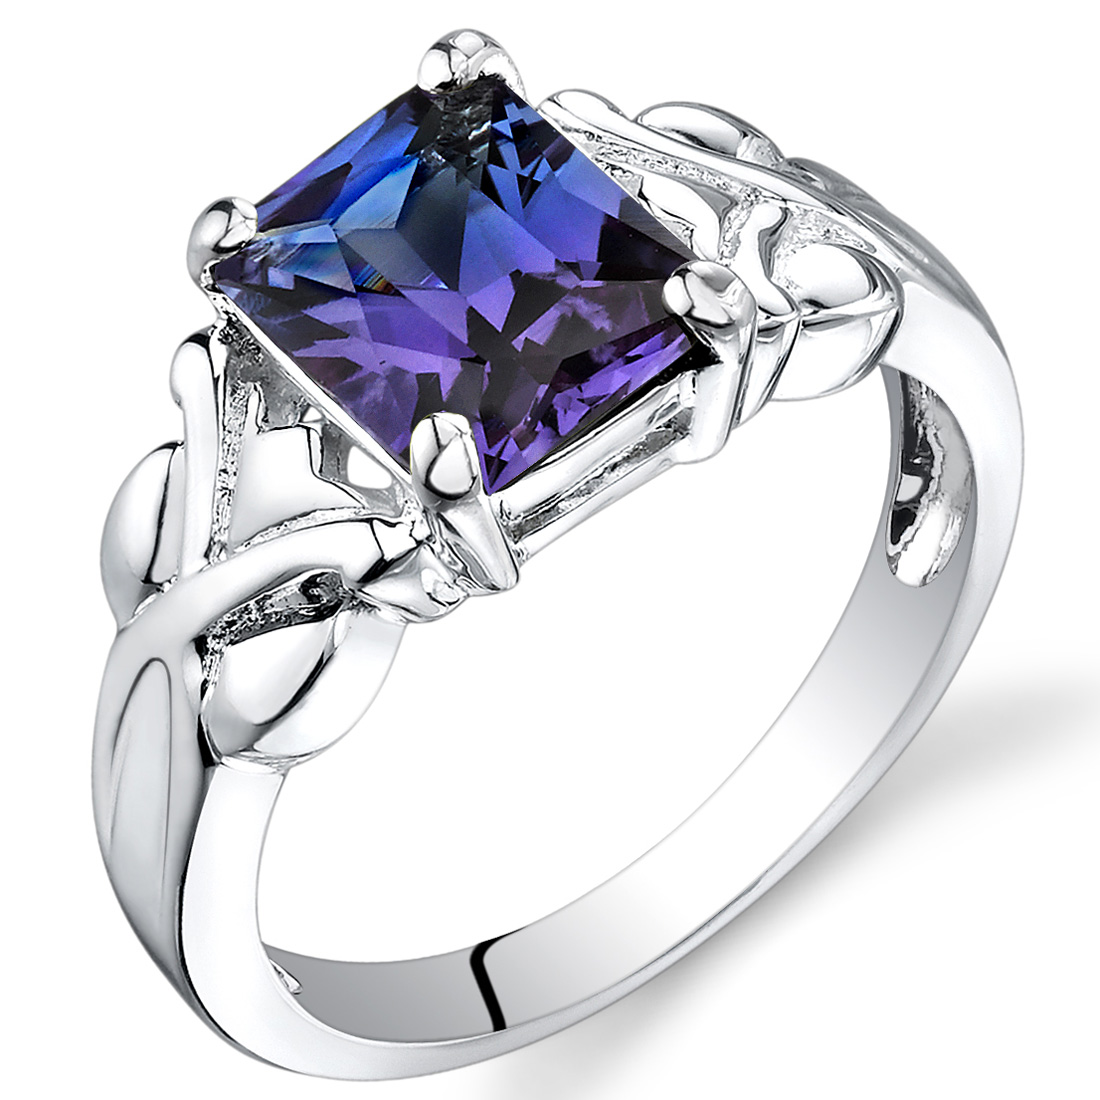 2.75 cts Radiant Cut Alexandrite Ring Sterling Silver Size 5 to 9 in Jewelry & Watches, Fine Jewelry, Fine Rings | eBay